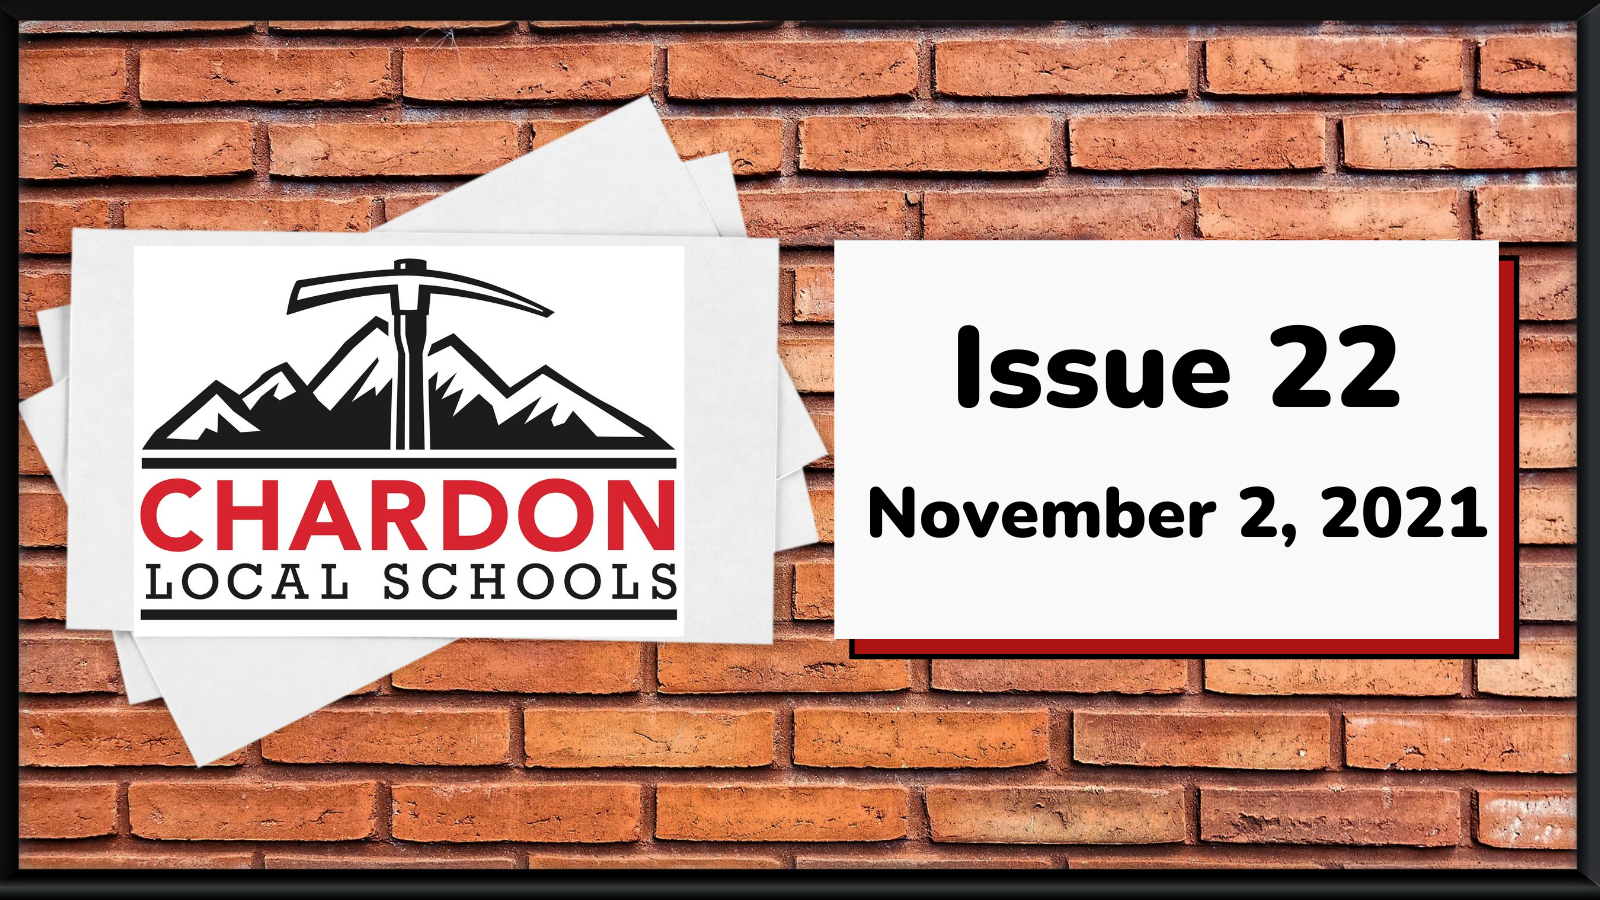 collage graphic featuring a brick background and centered is the Chardon Local Schools mountain axe logo (red, black, white); verbiage:  Issue 22 - November 2, 2021